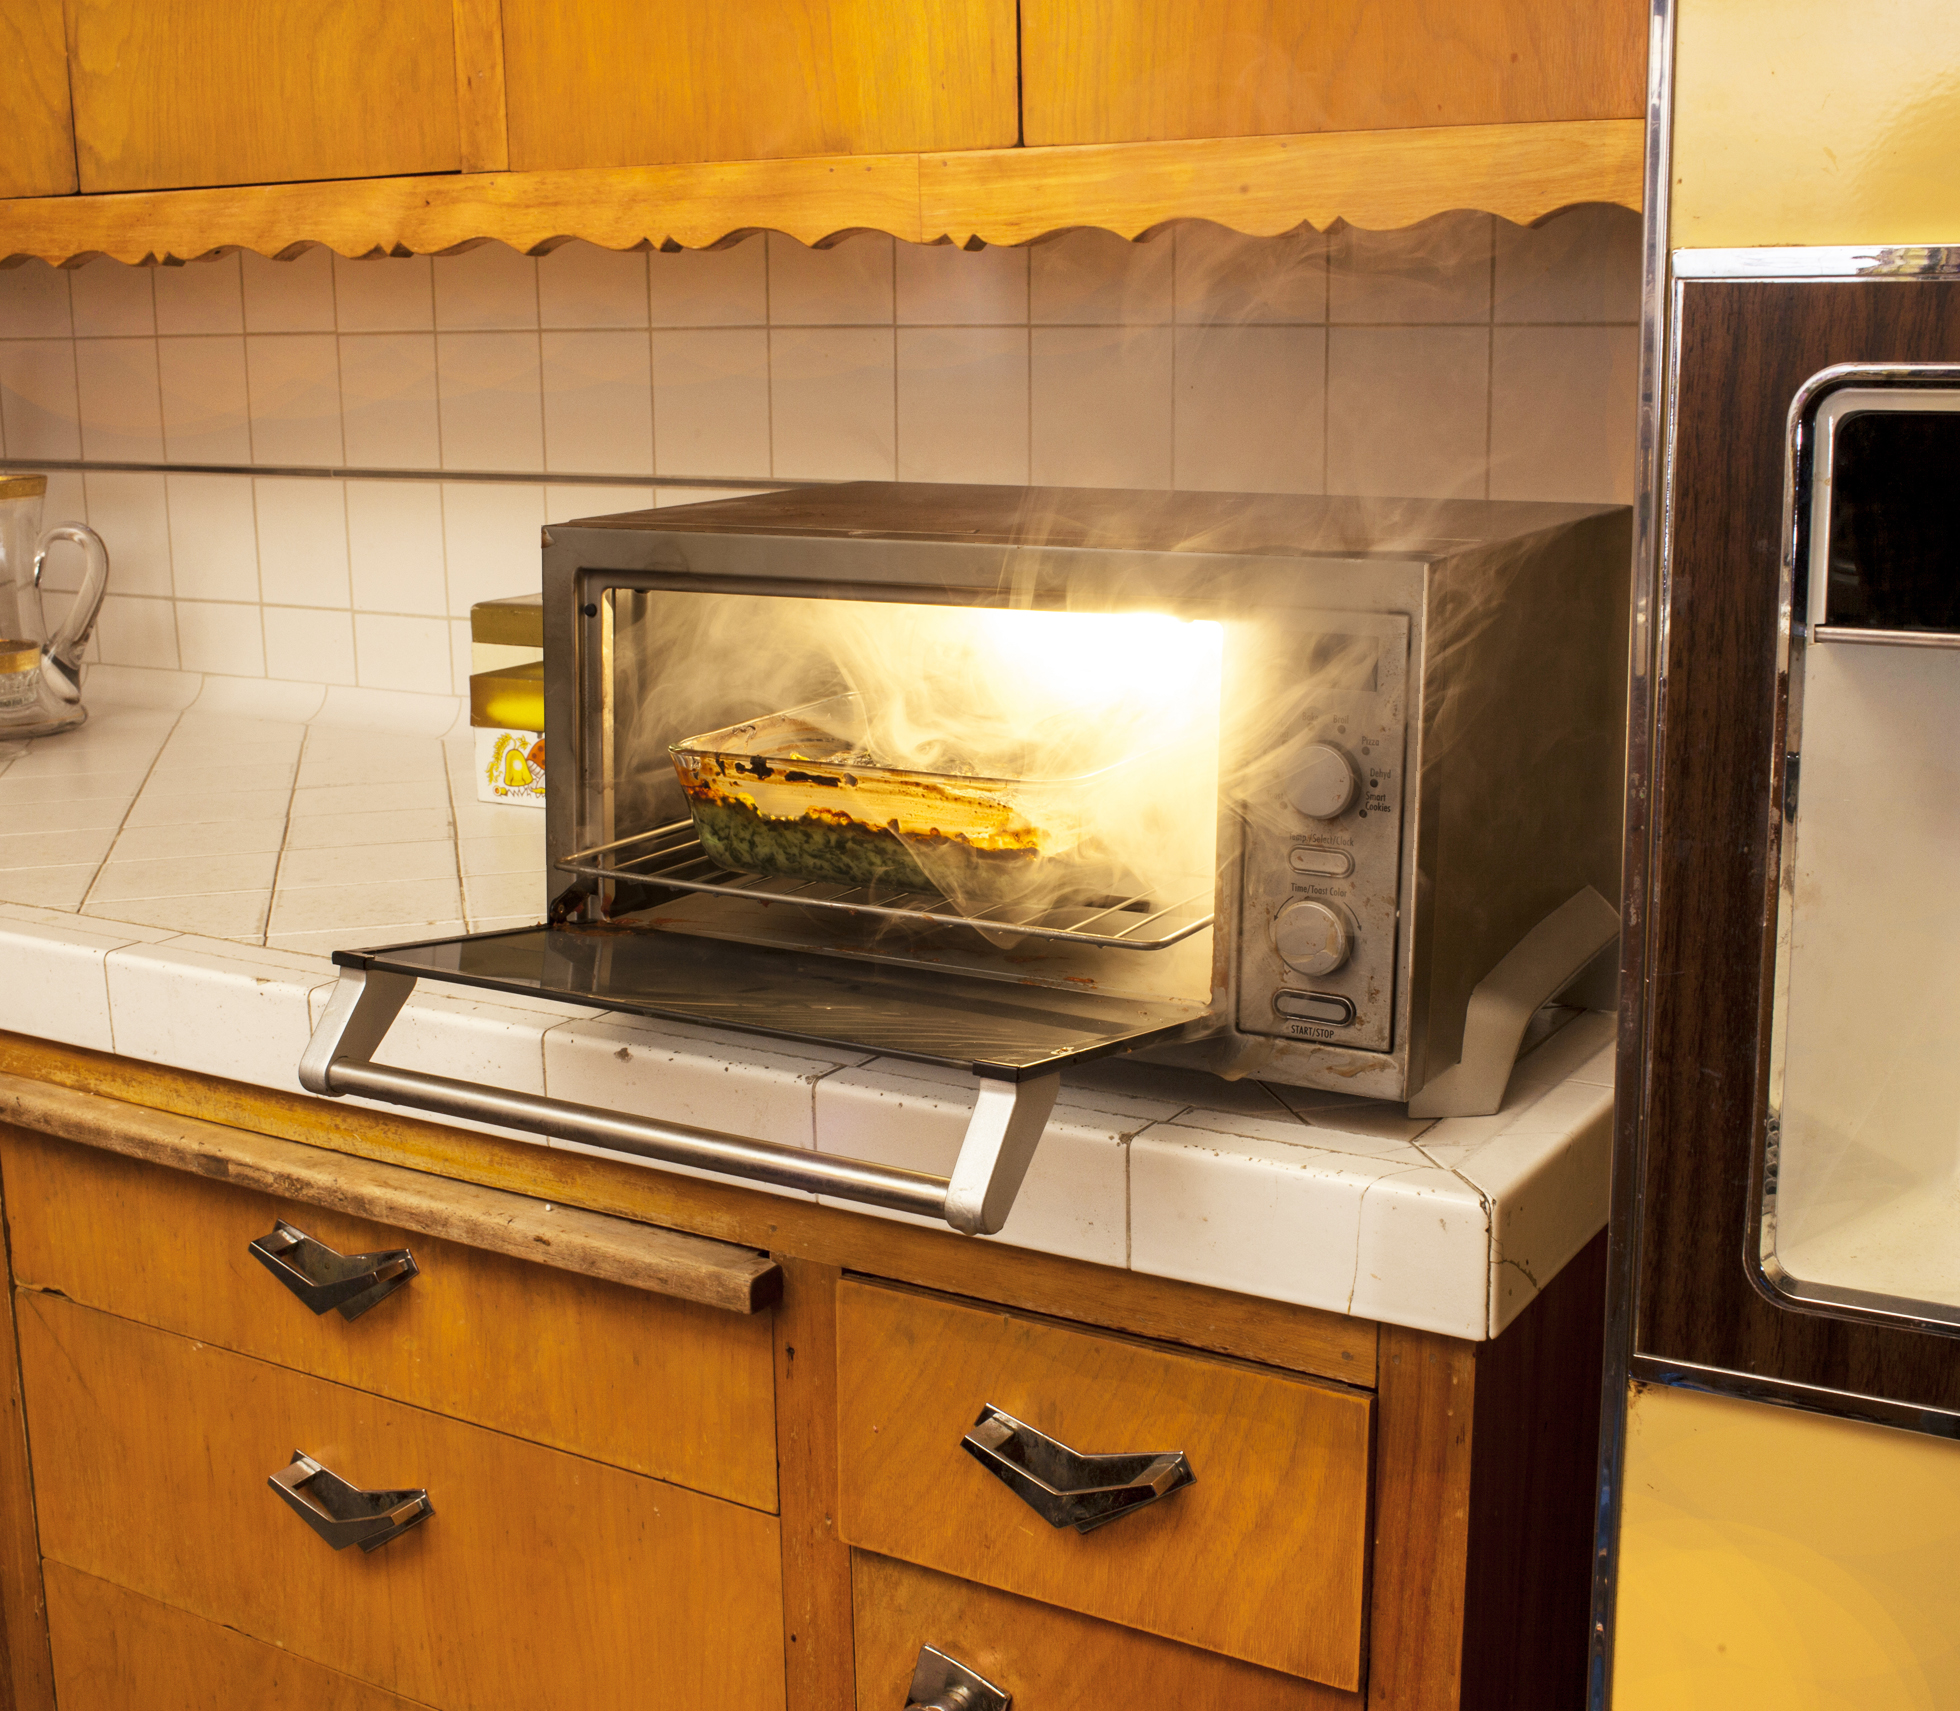 Toaster in home kitchen on fire